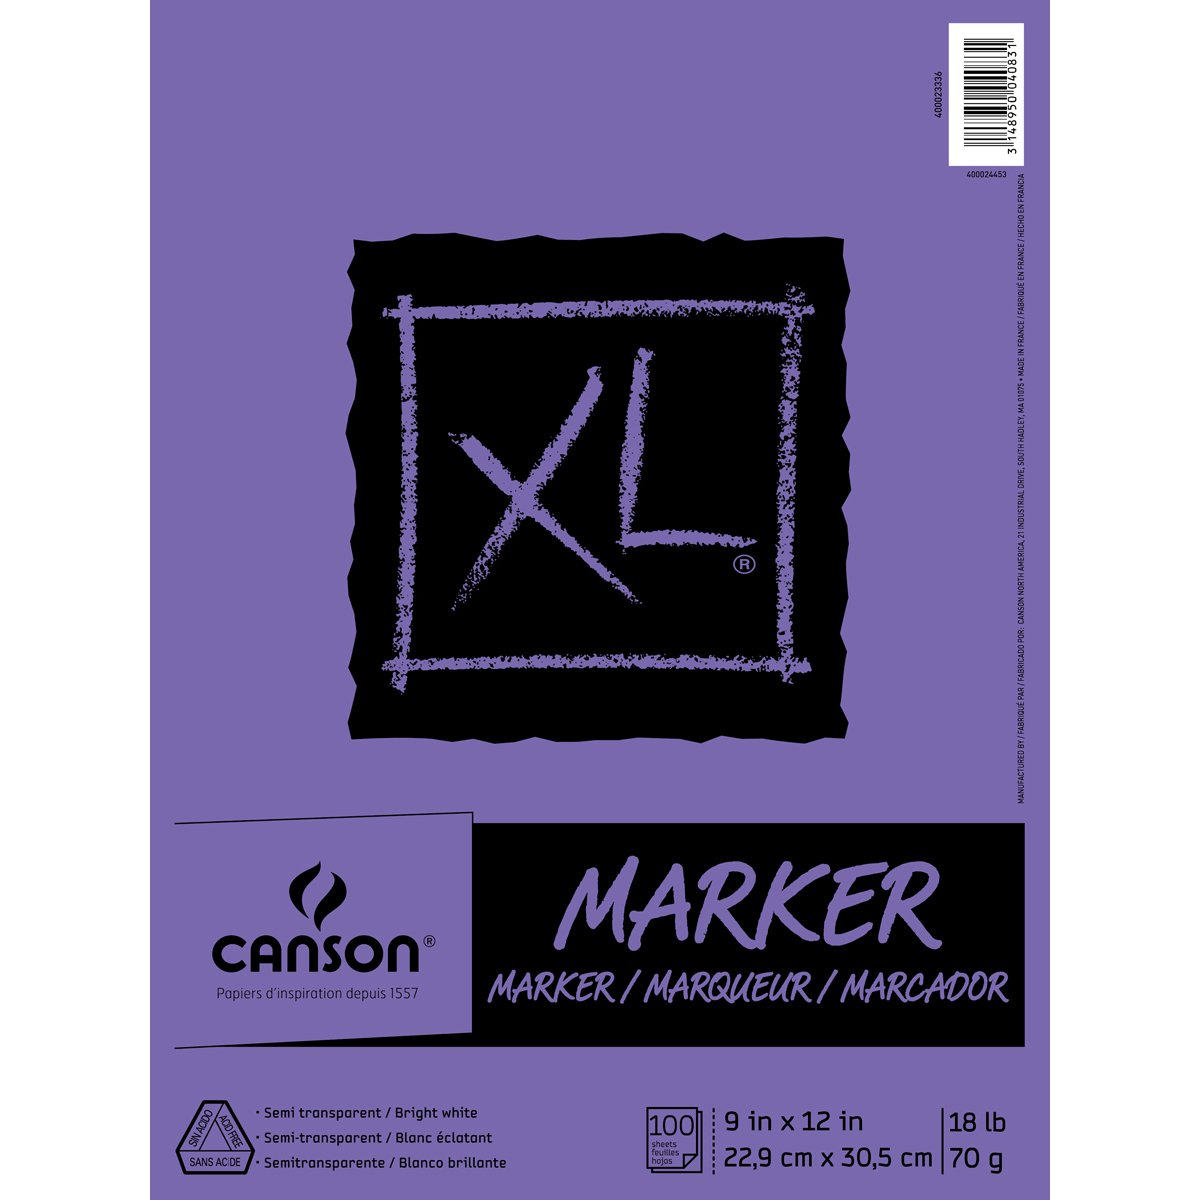 Canson XL Series Marker Paper Pad, Semi Translucent for Pen, Pencil or Marker, Fold Over, 18 Pound, 9 x 12 Inch, White, 100 Sheets (400023336) by Canson